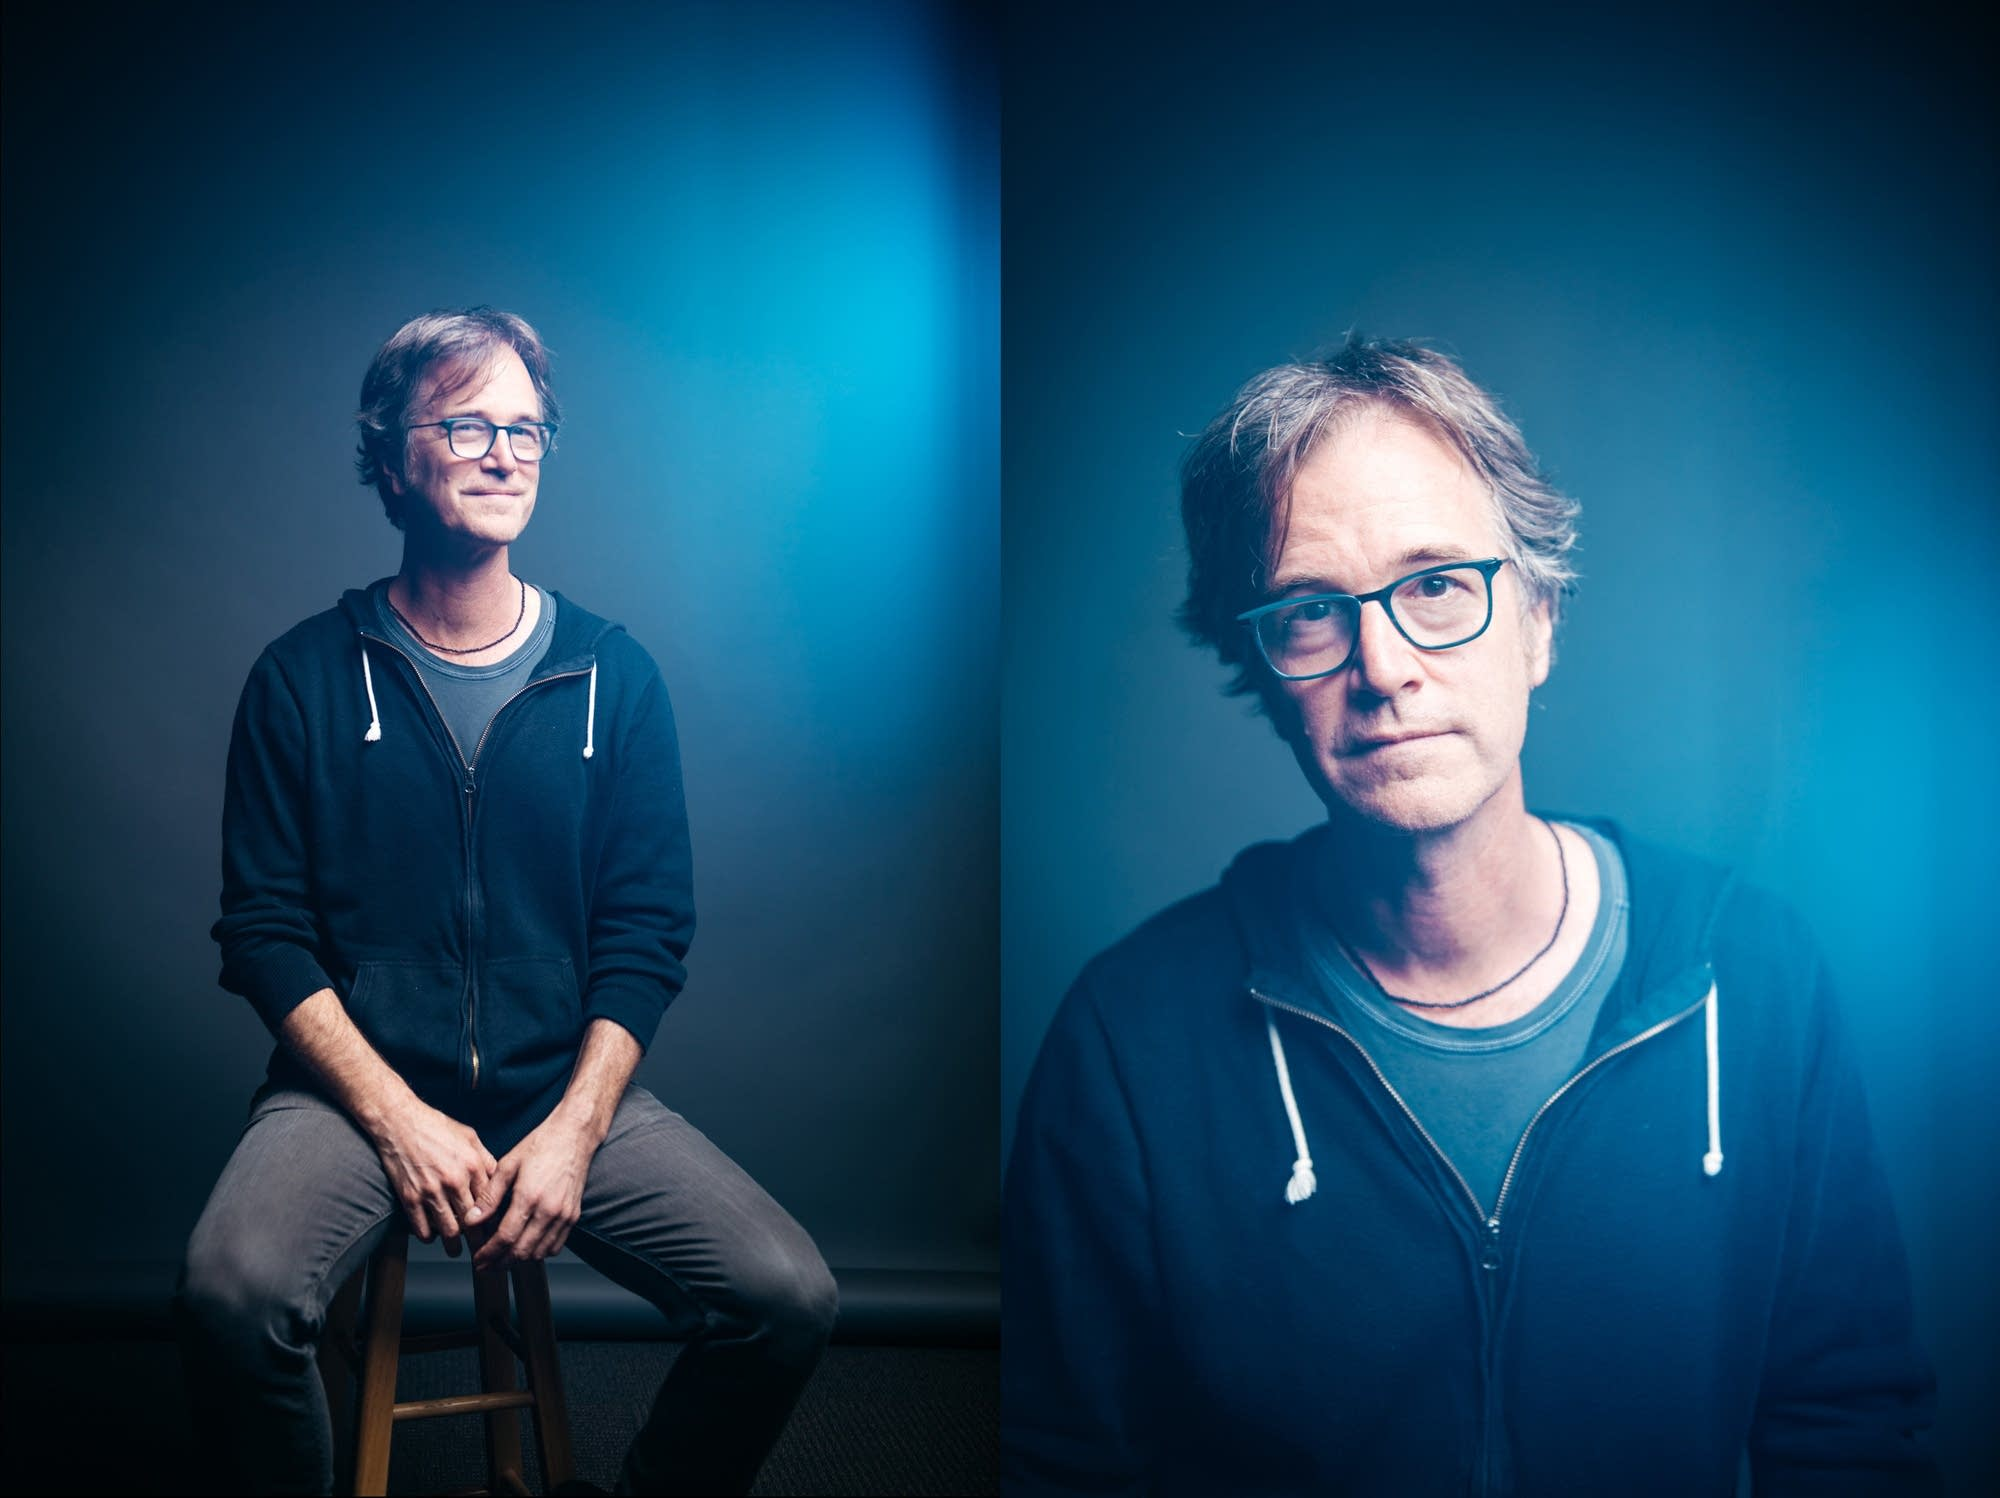 Dan Wilson portrait at The Current